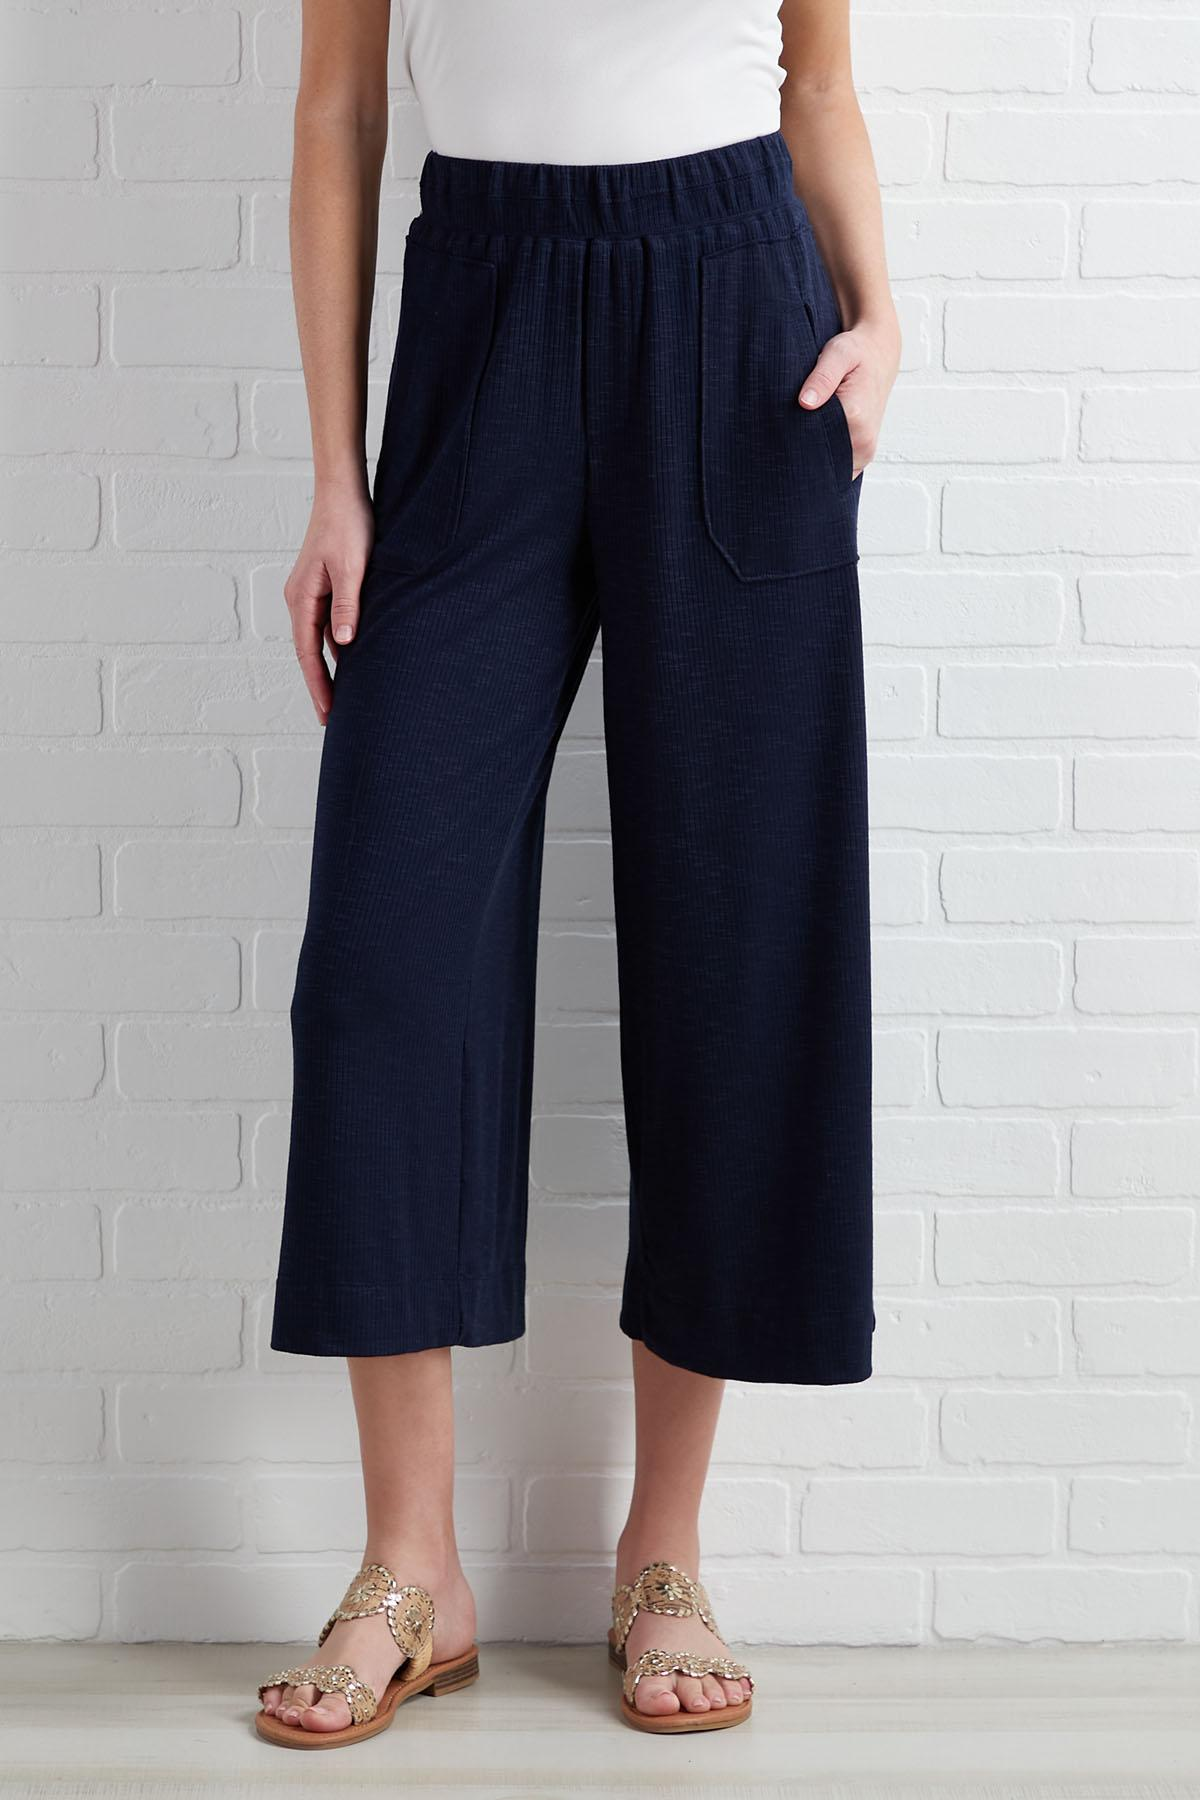 Call Knit Even Pants